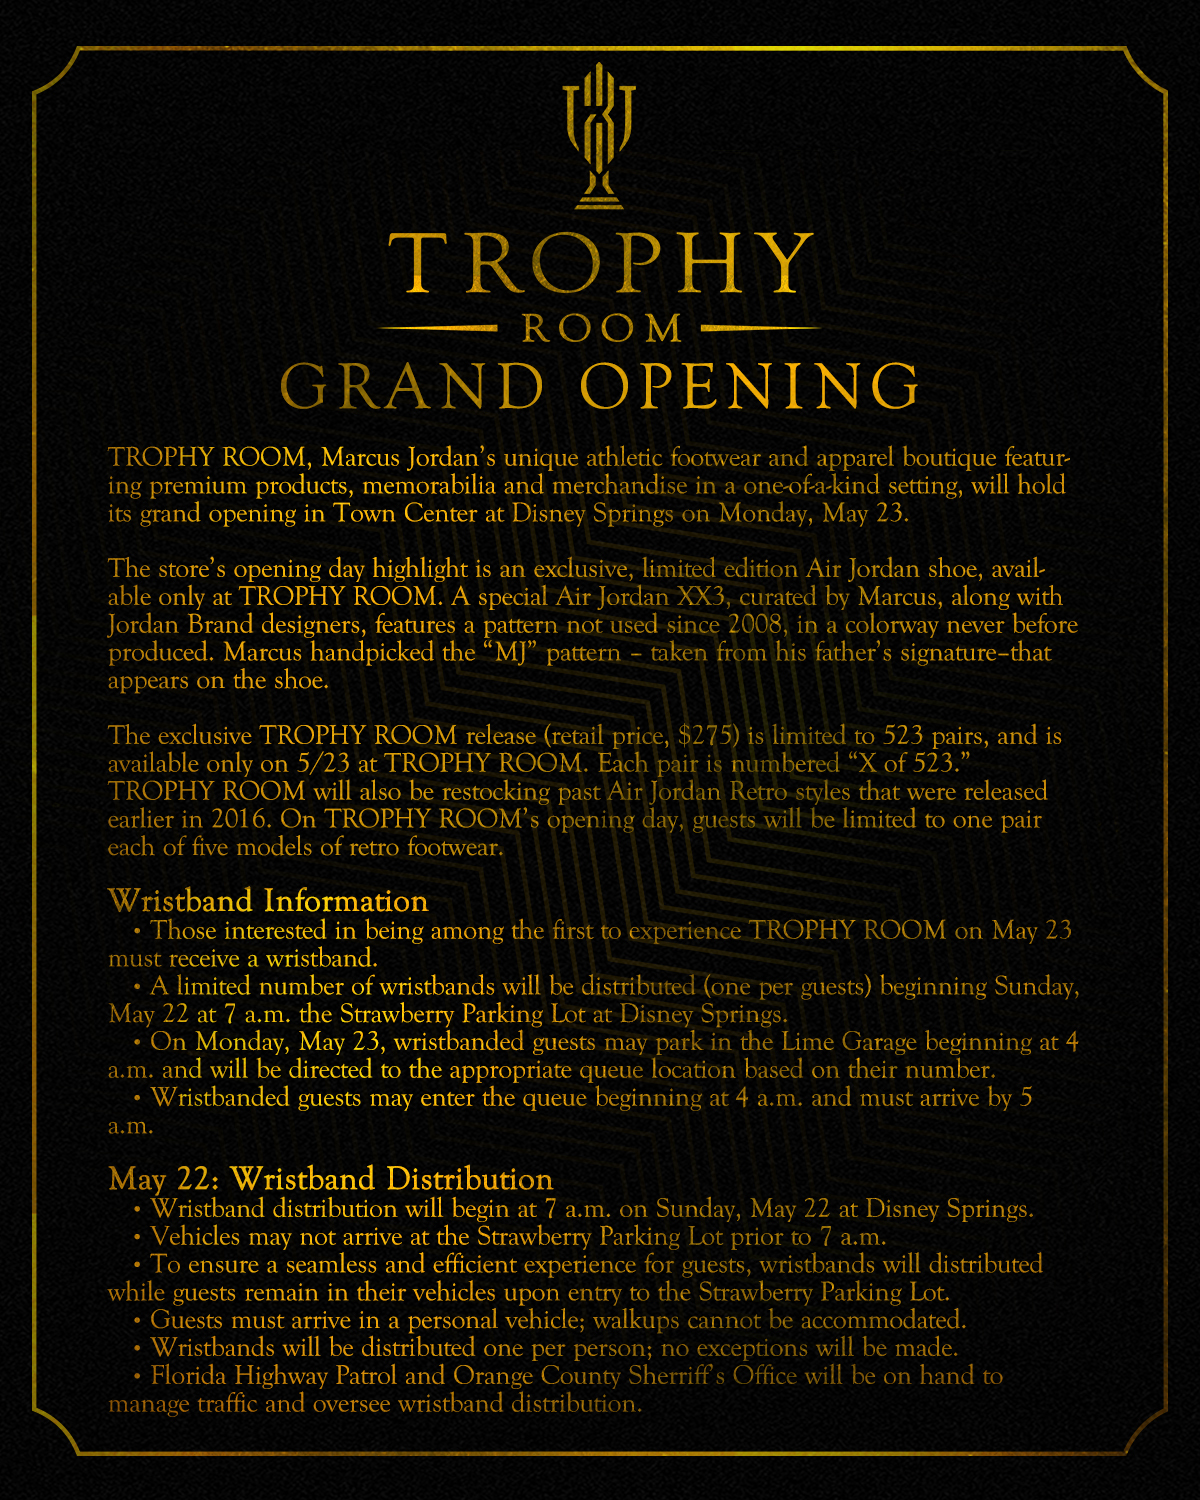 Trophy Room Grand Opening Details